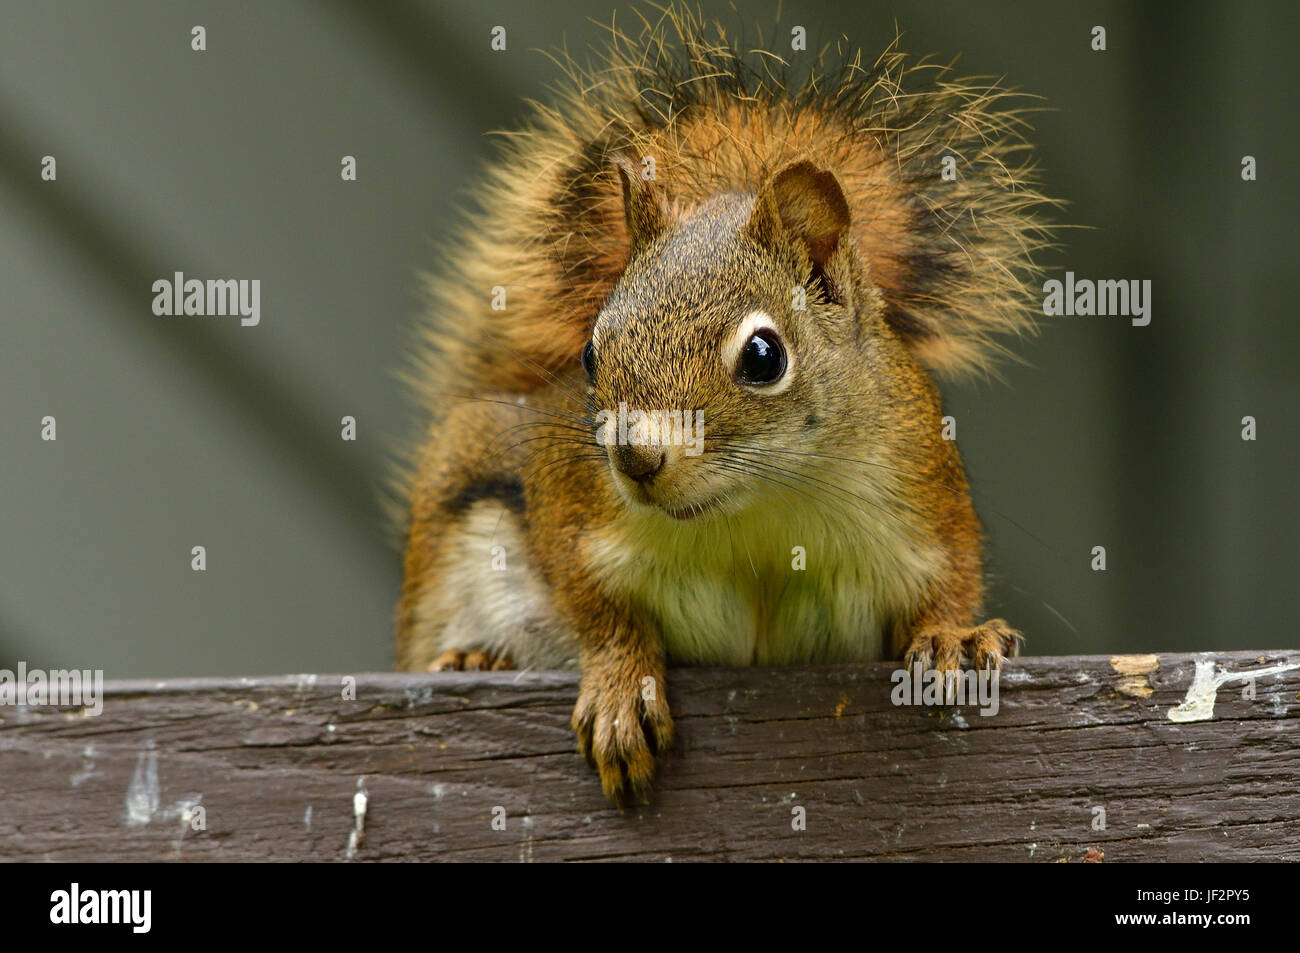 A red squirrel ( Tamiasciurus hudsonicus); on a brown fence in rural Alberta Canada - Stock Image